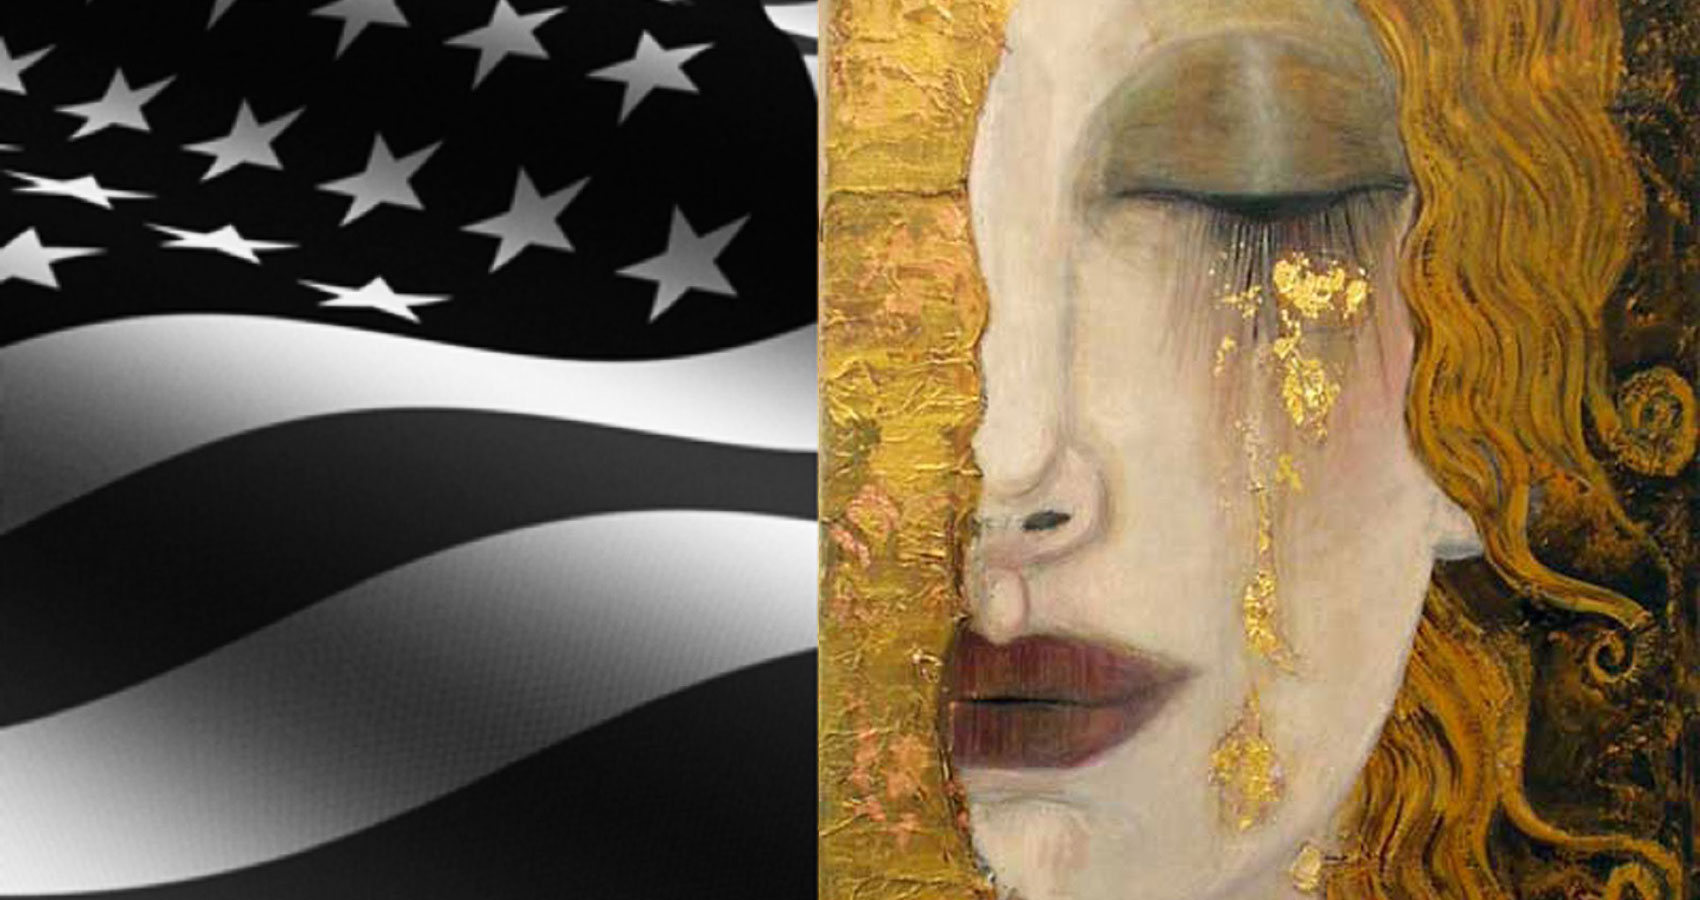 Restless Mourn by Alison Vail Fuller at Spillwords.com